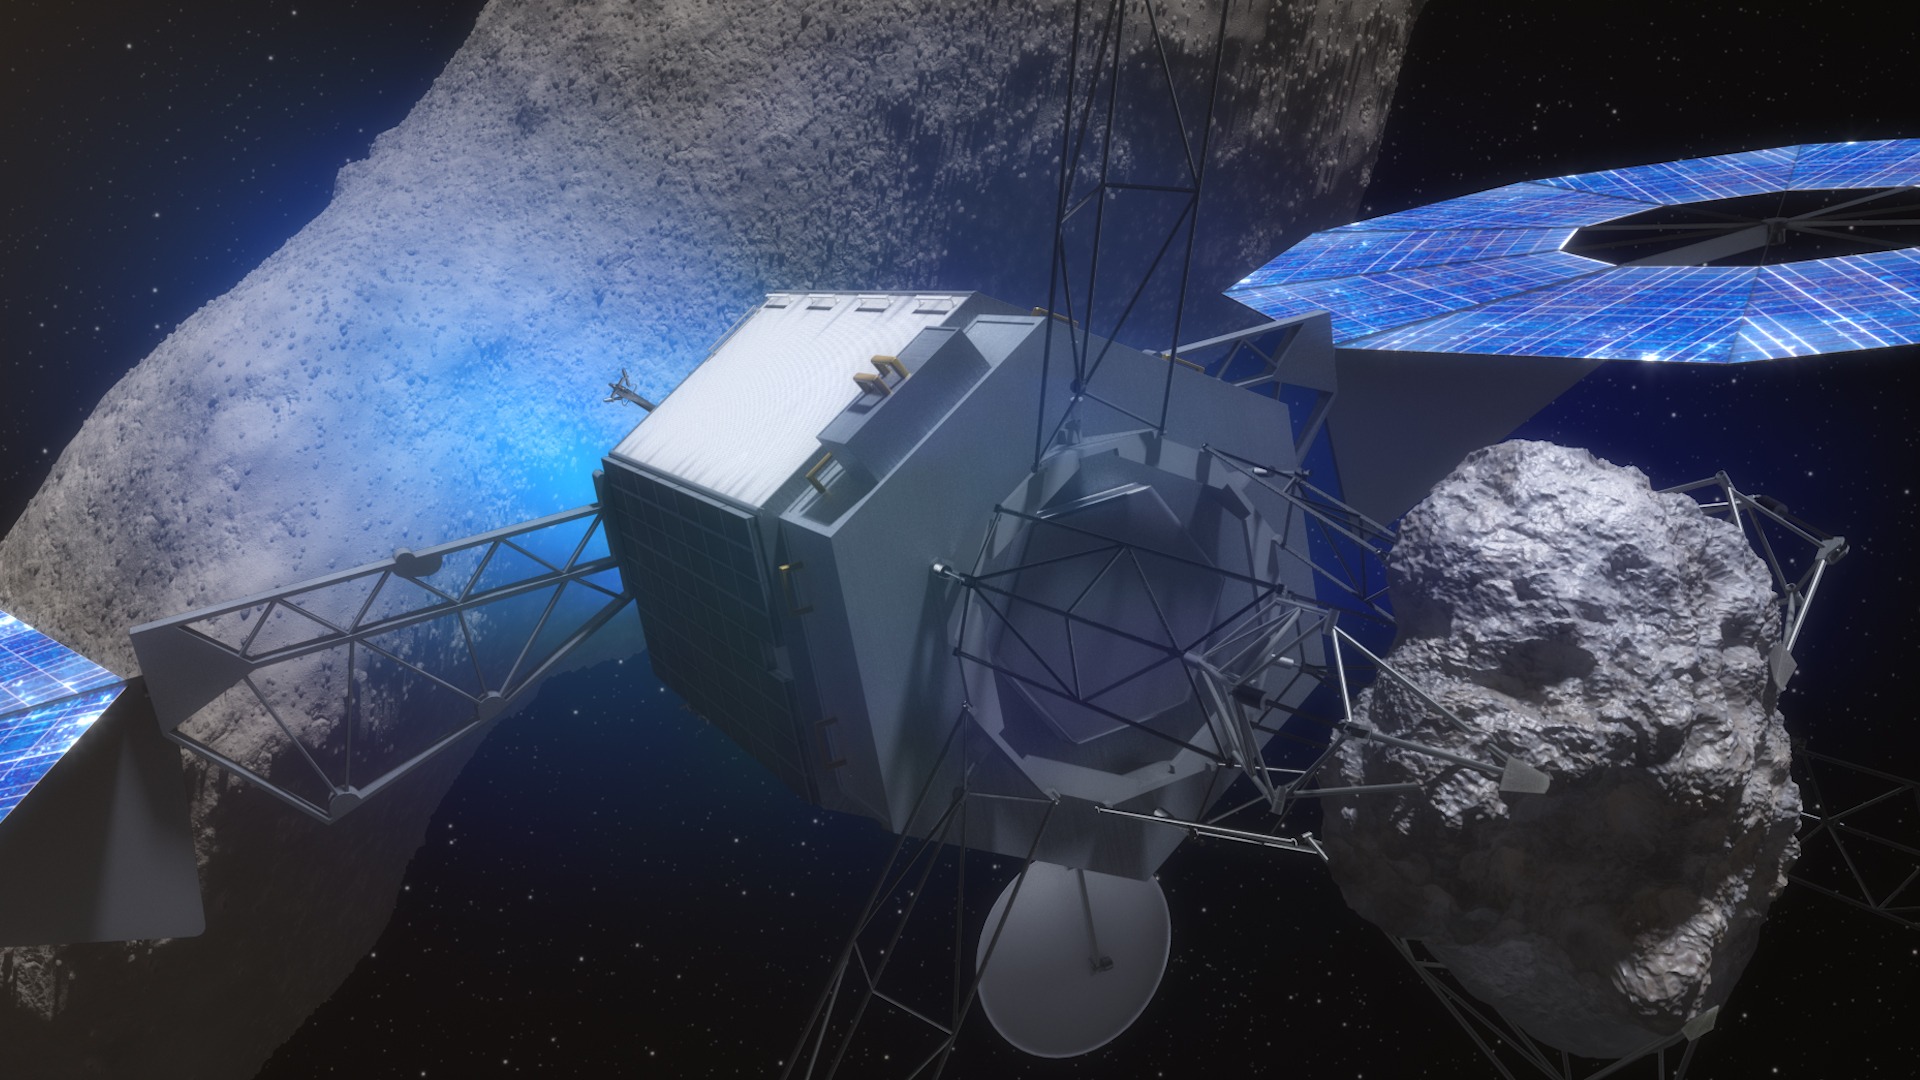 NASA Holds Off on Asteroid-Capture Mission Decision Until Early 2015